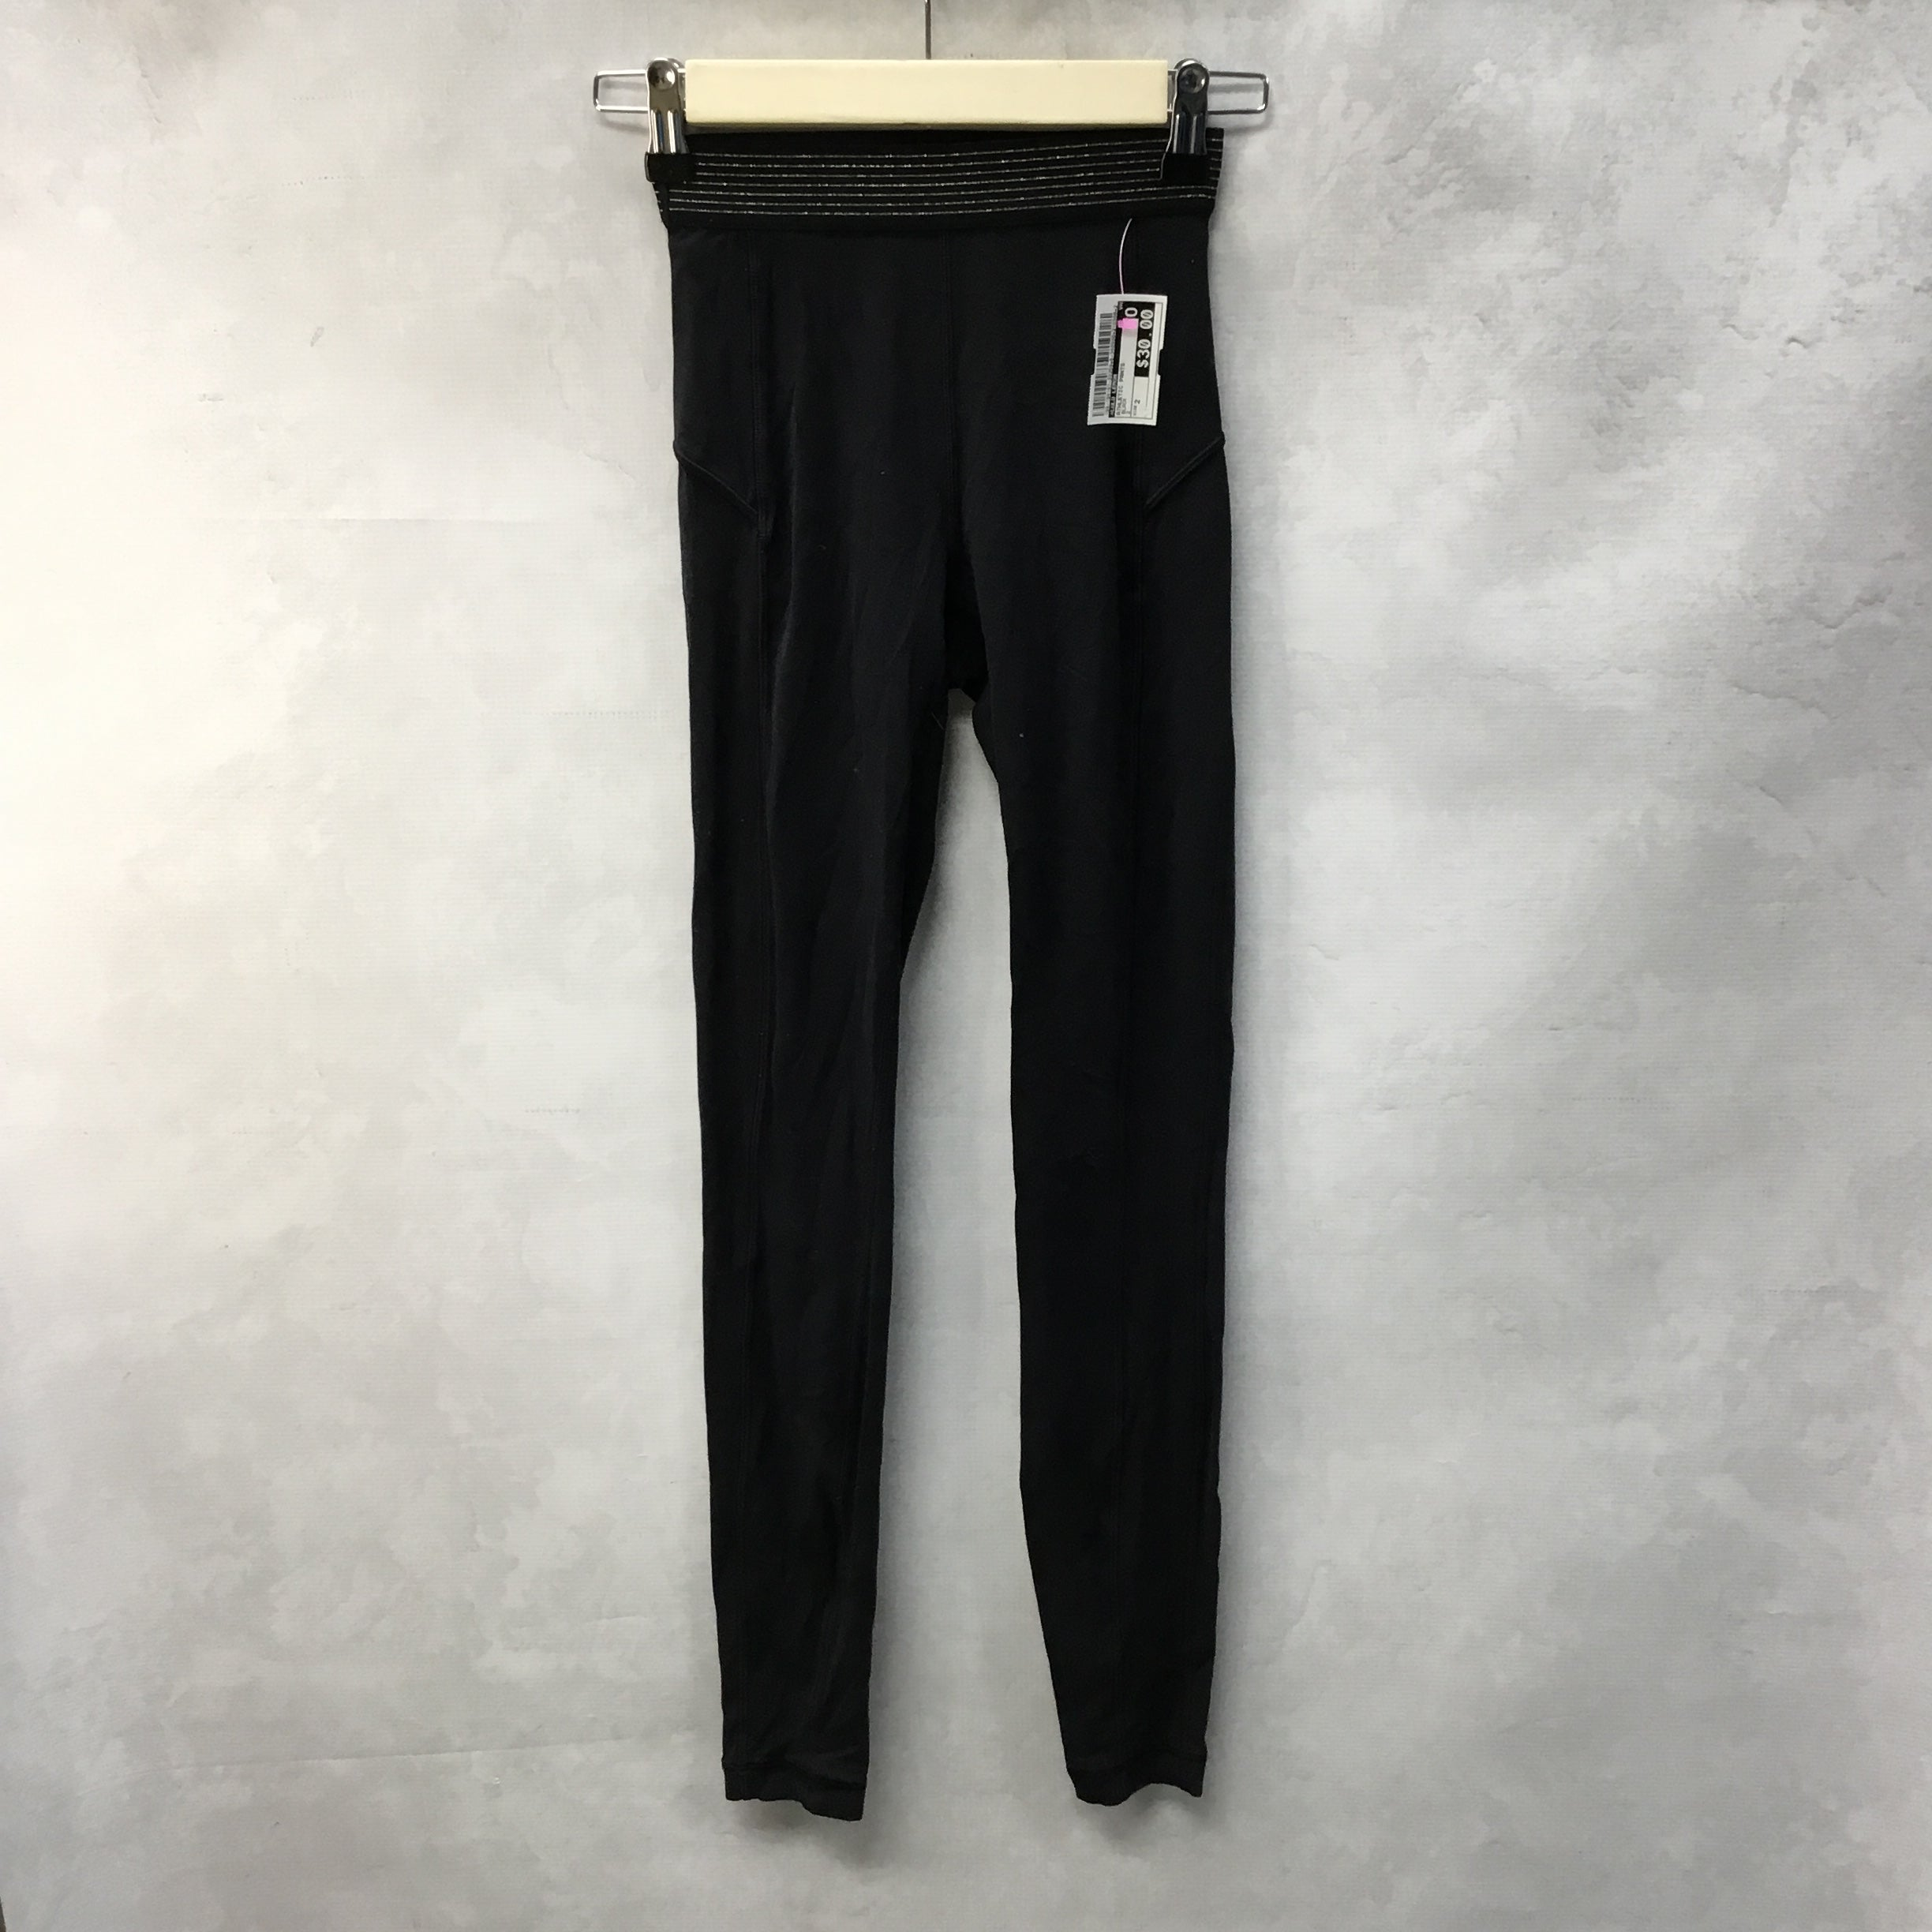 Primary Photo - BRAND: LULULEMON <BR>STYLE: ATHLETIC PANTS <BR>COLOR: BLACK <BR>SIZE: 2 <BR>SKU: 194-194167-33259